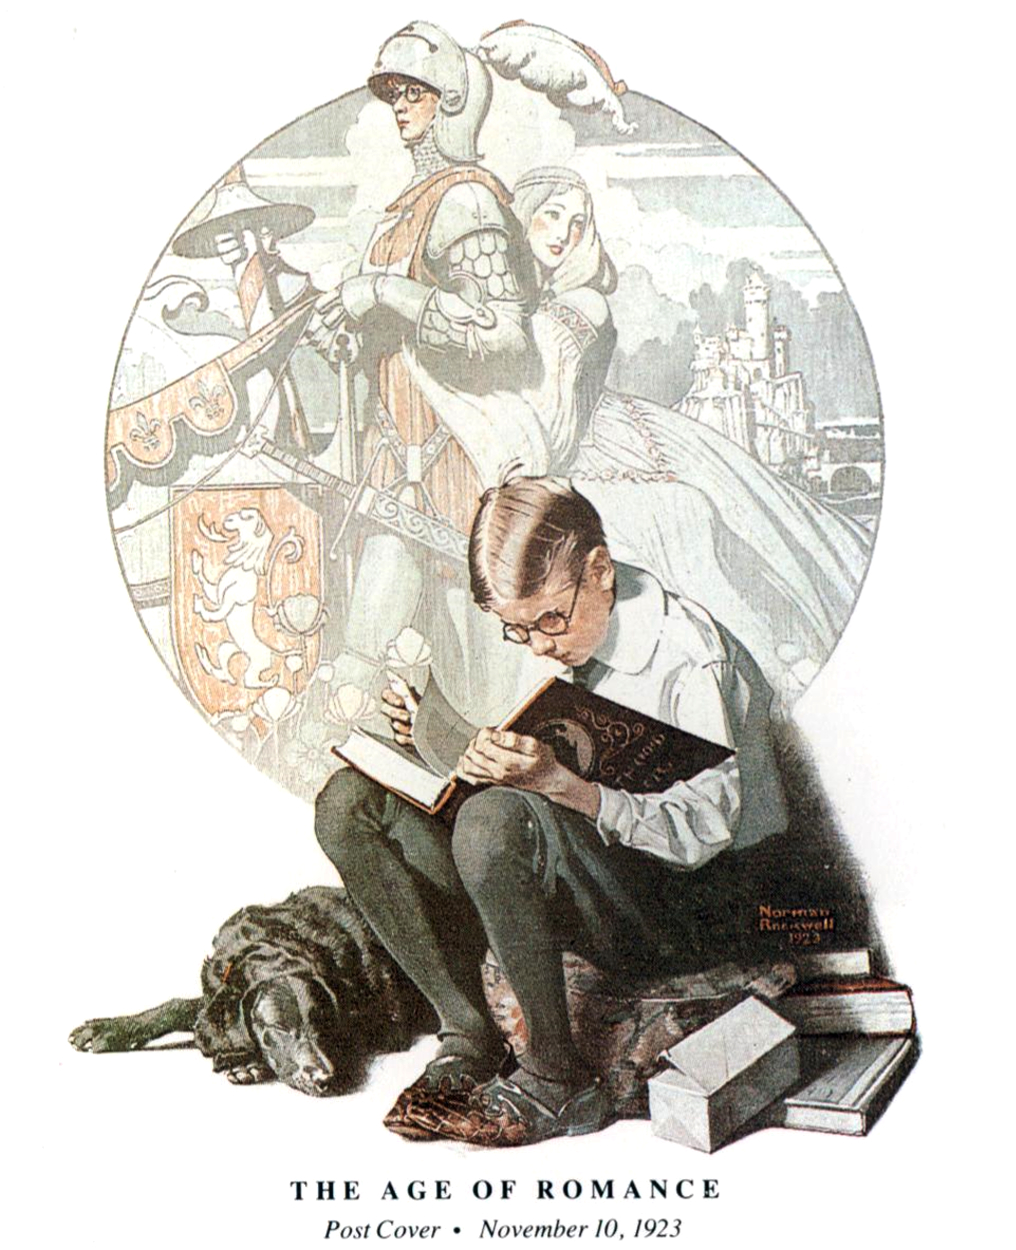 saveflowers1 :      Art by Norman Rockwell  (1923) from SATURDAY EVENING POST.